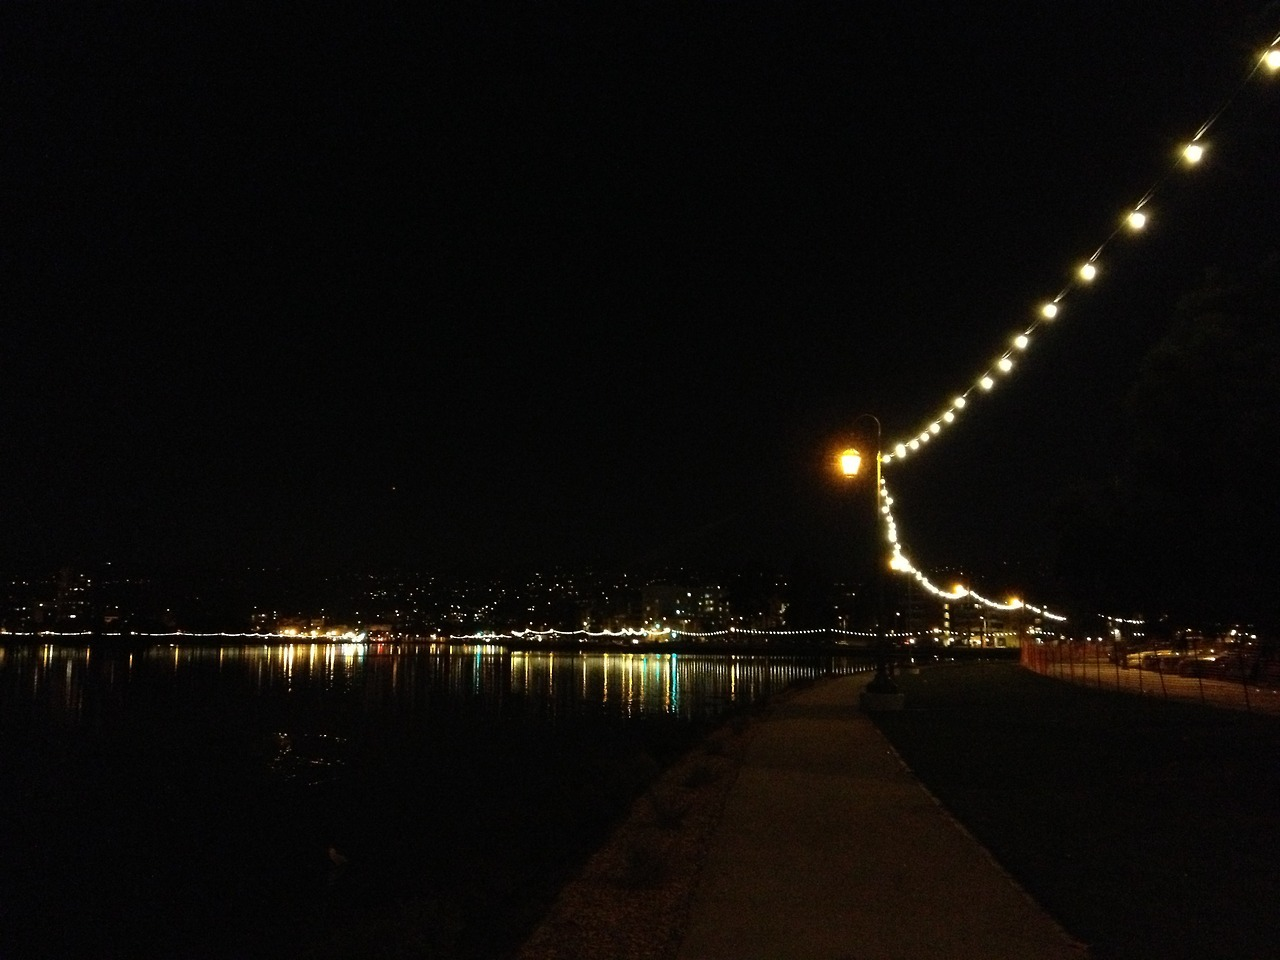 Lake Merritt at Night [Taken 2/24/13 at Lake Merritt in Oakland, CA using iPhone 4S]